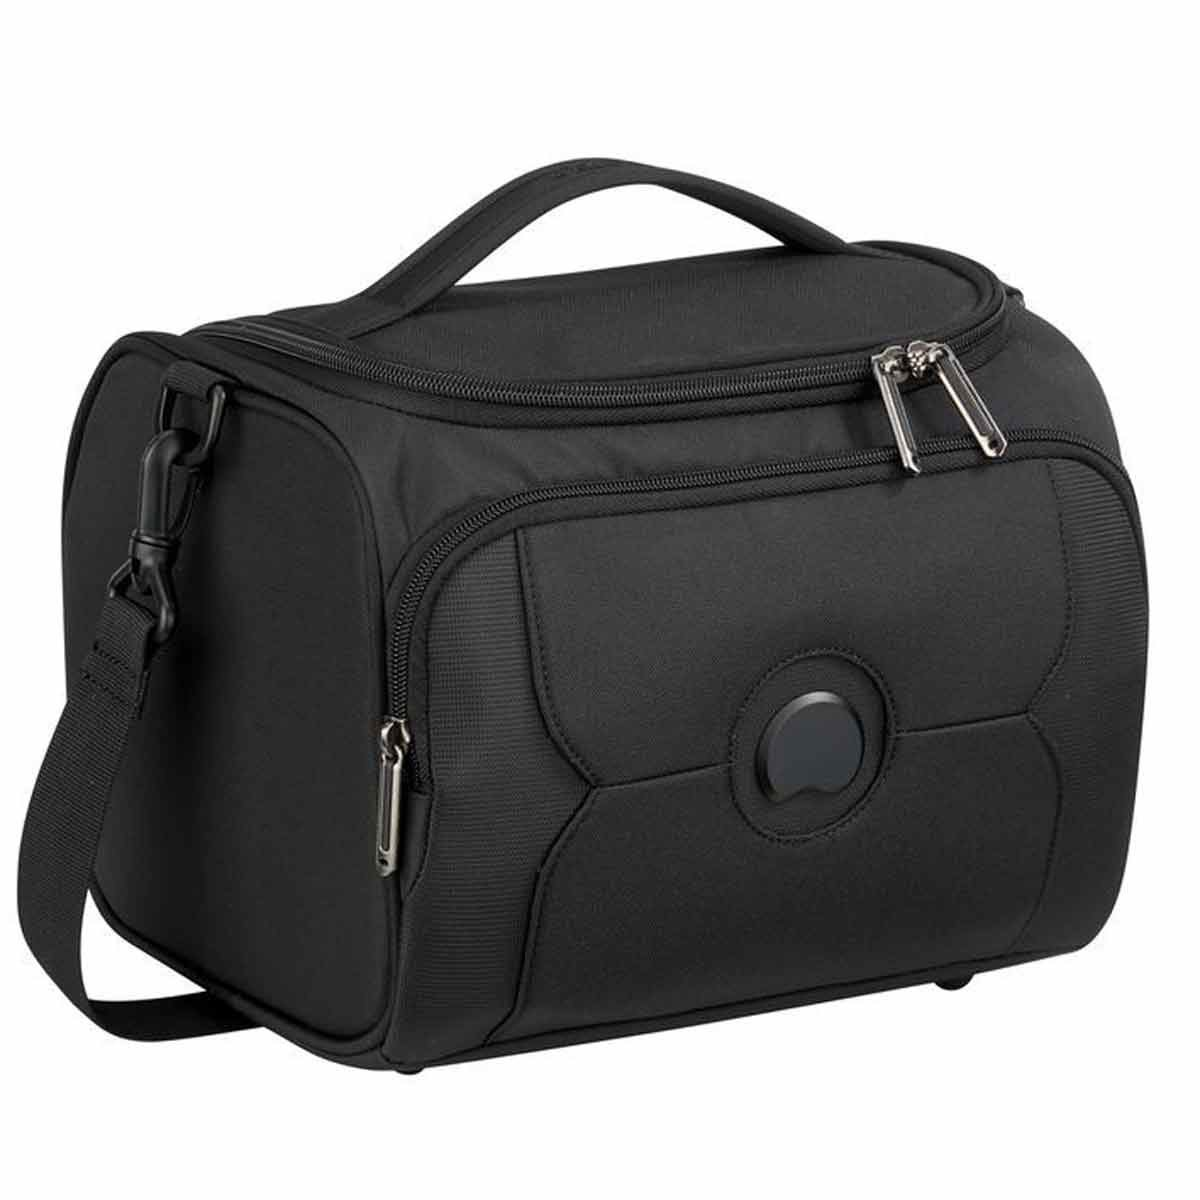 Vanity case Delsey noire -collection MERCURE